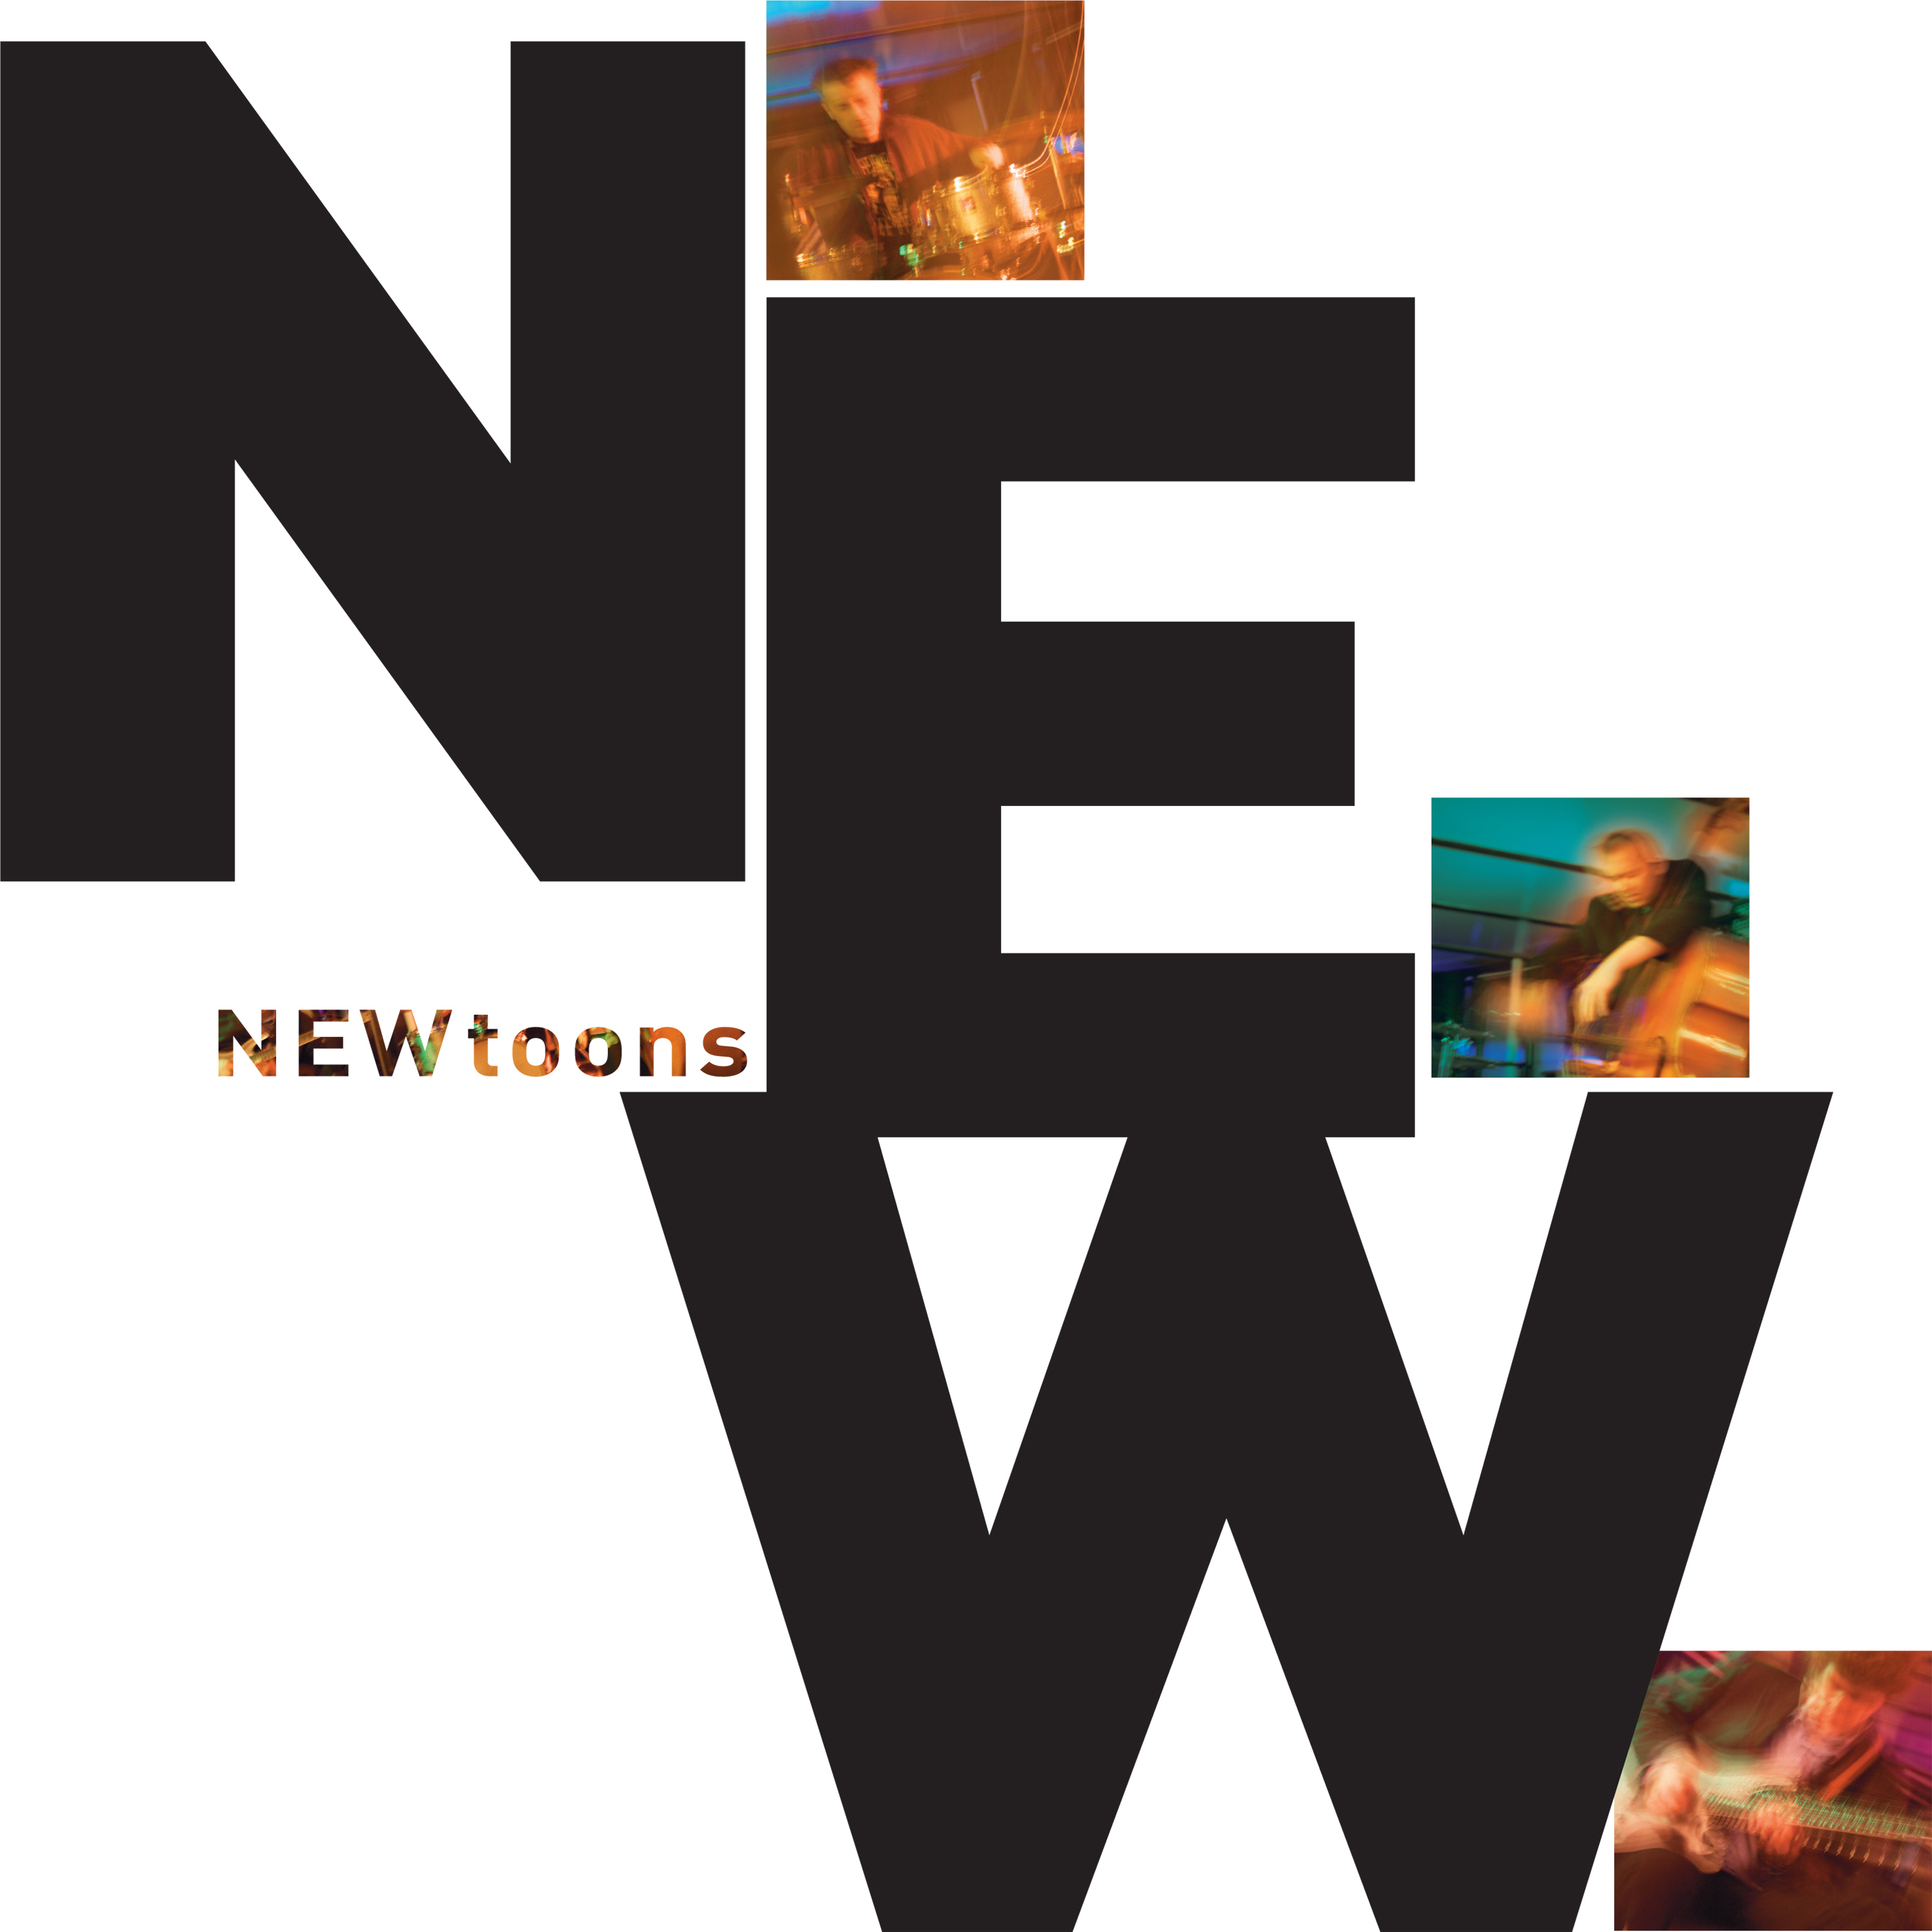 N.E.W - (Steve Noble, John Edwards, Alex Ward).